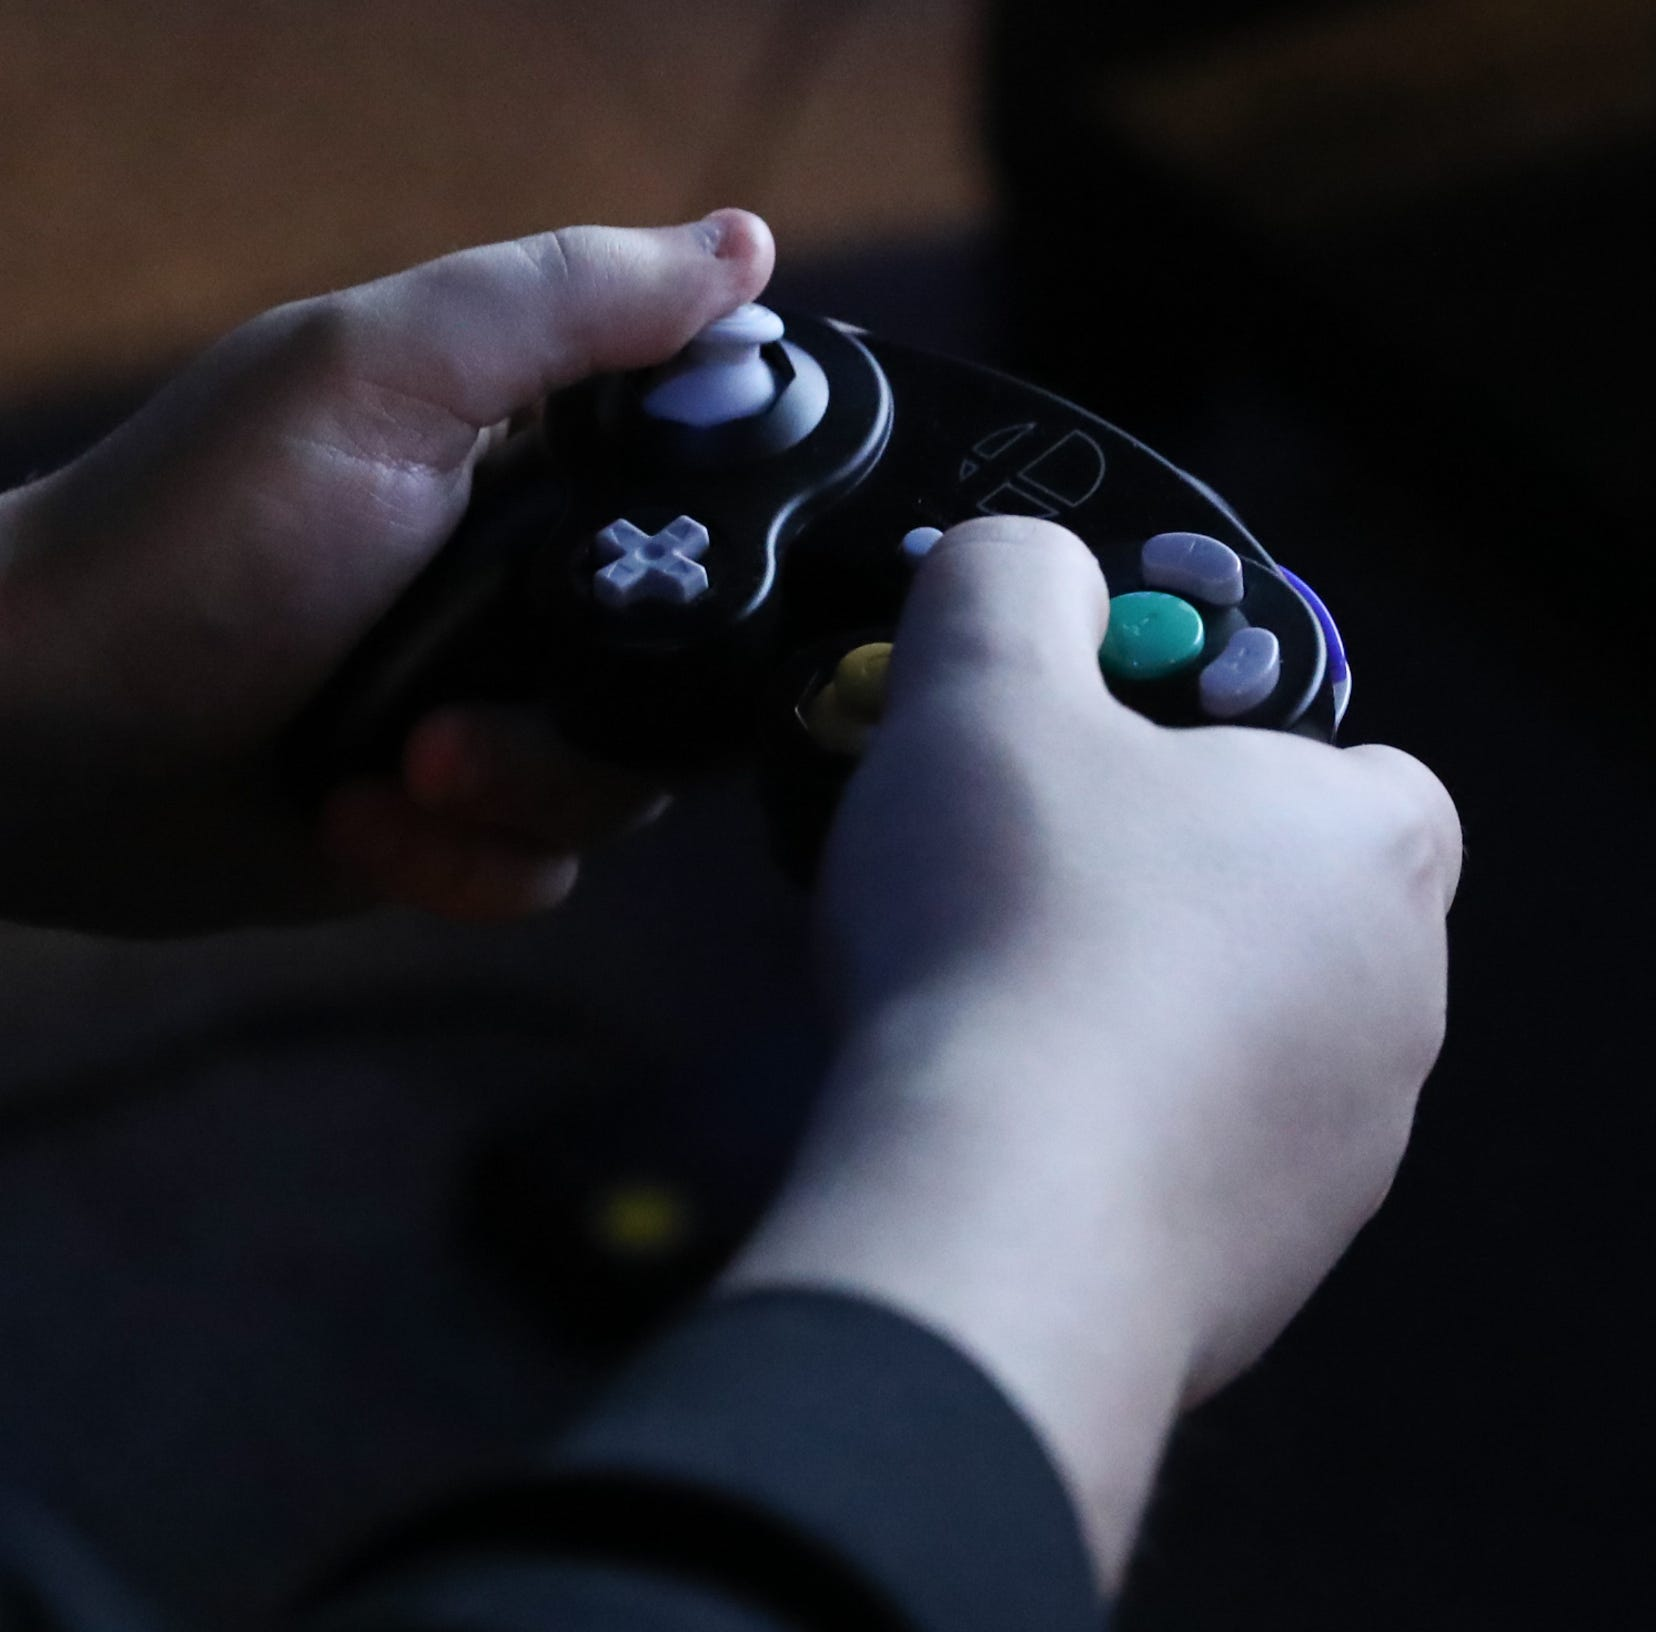 The hands of an esport gamer clutching the controler at Encore Esports Gaming Lounge in New Rochelle on Thursday, December 20, 2018.